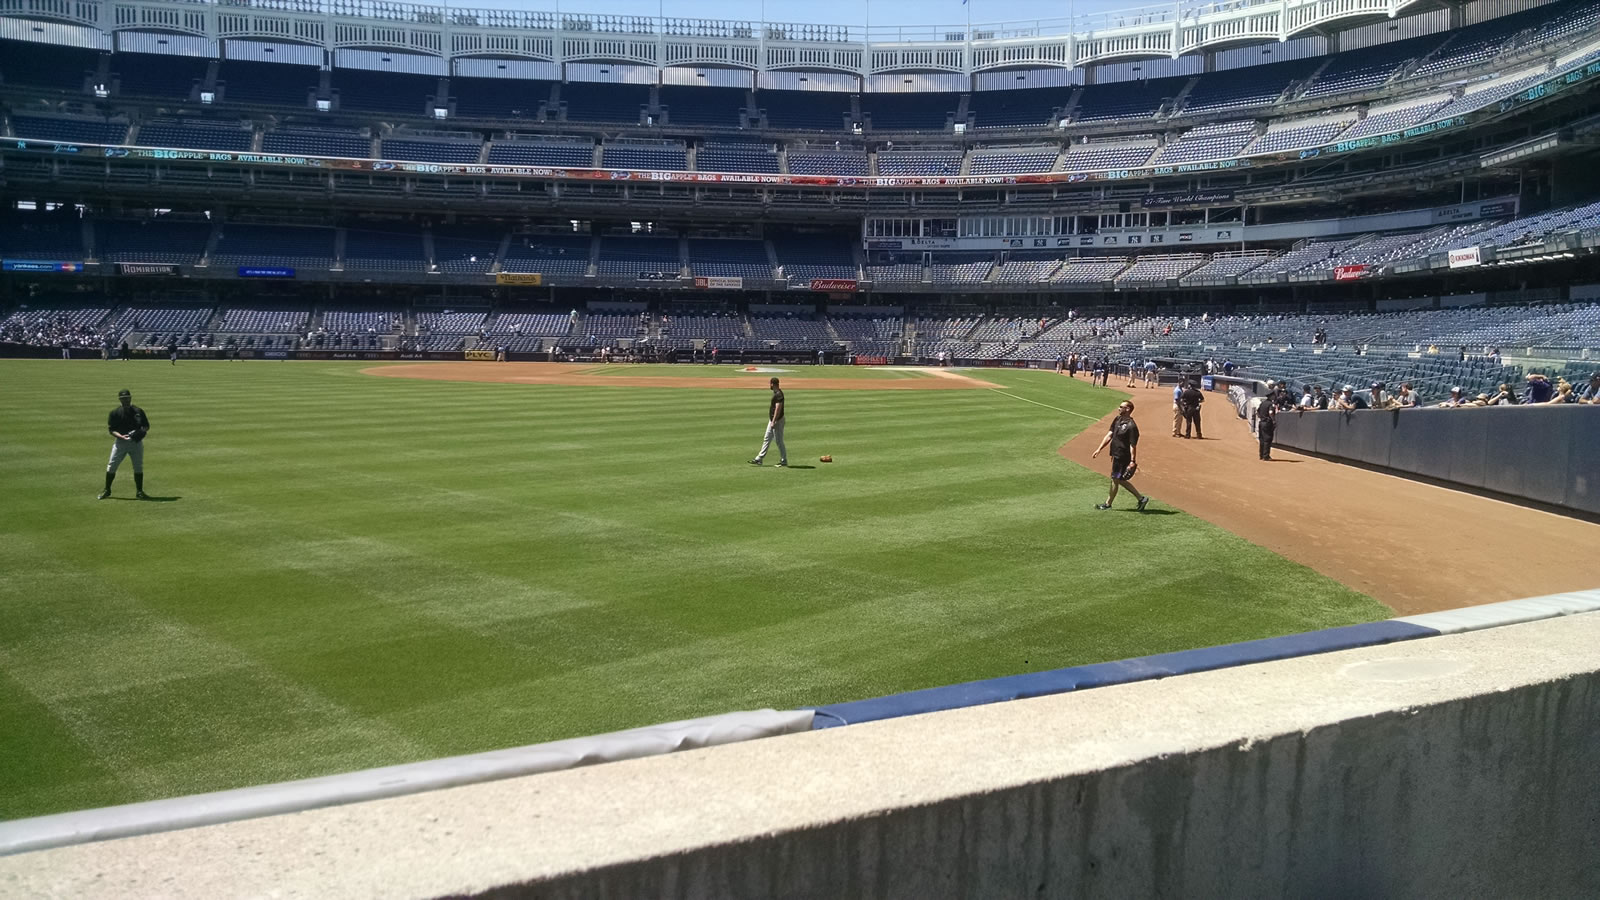 New York Yankees Seat View for Yankee Stadium Section 133, Row 1, Seat 8